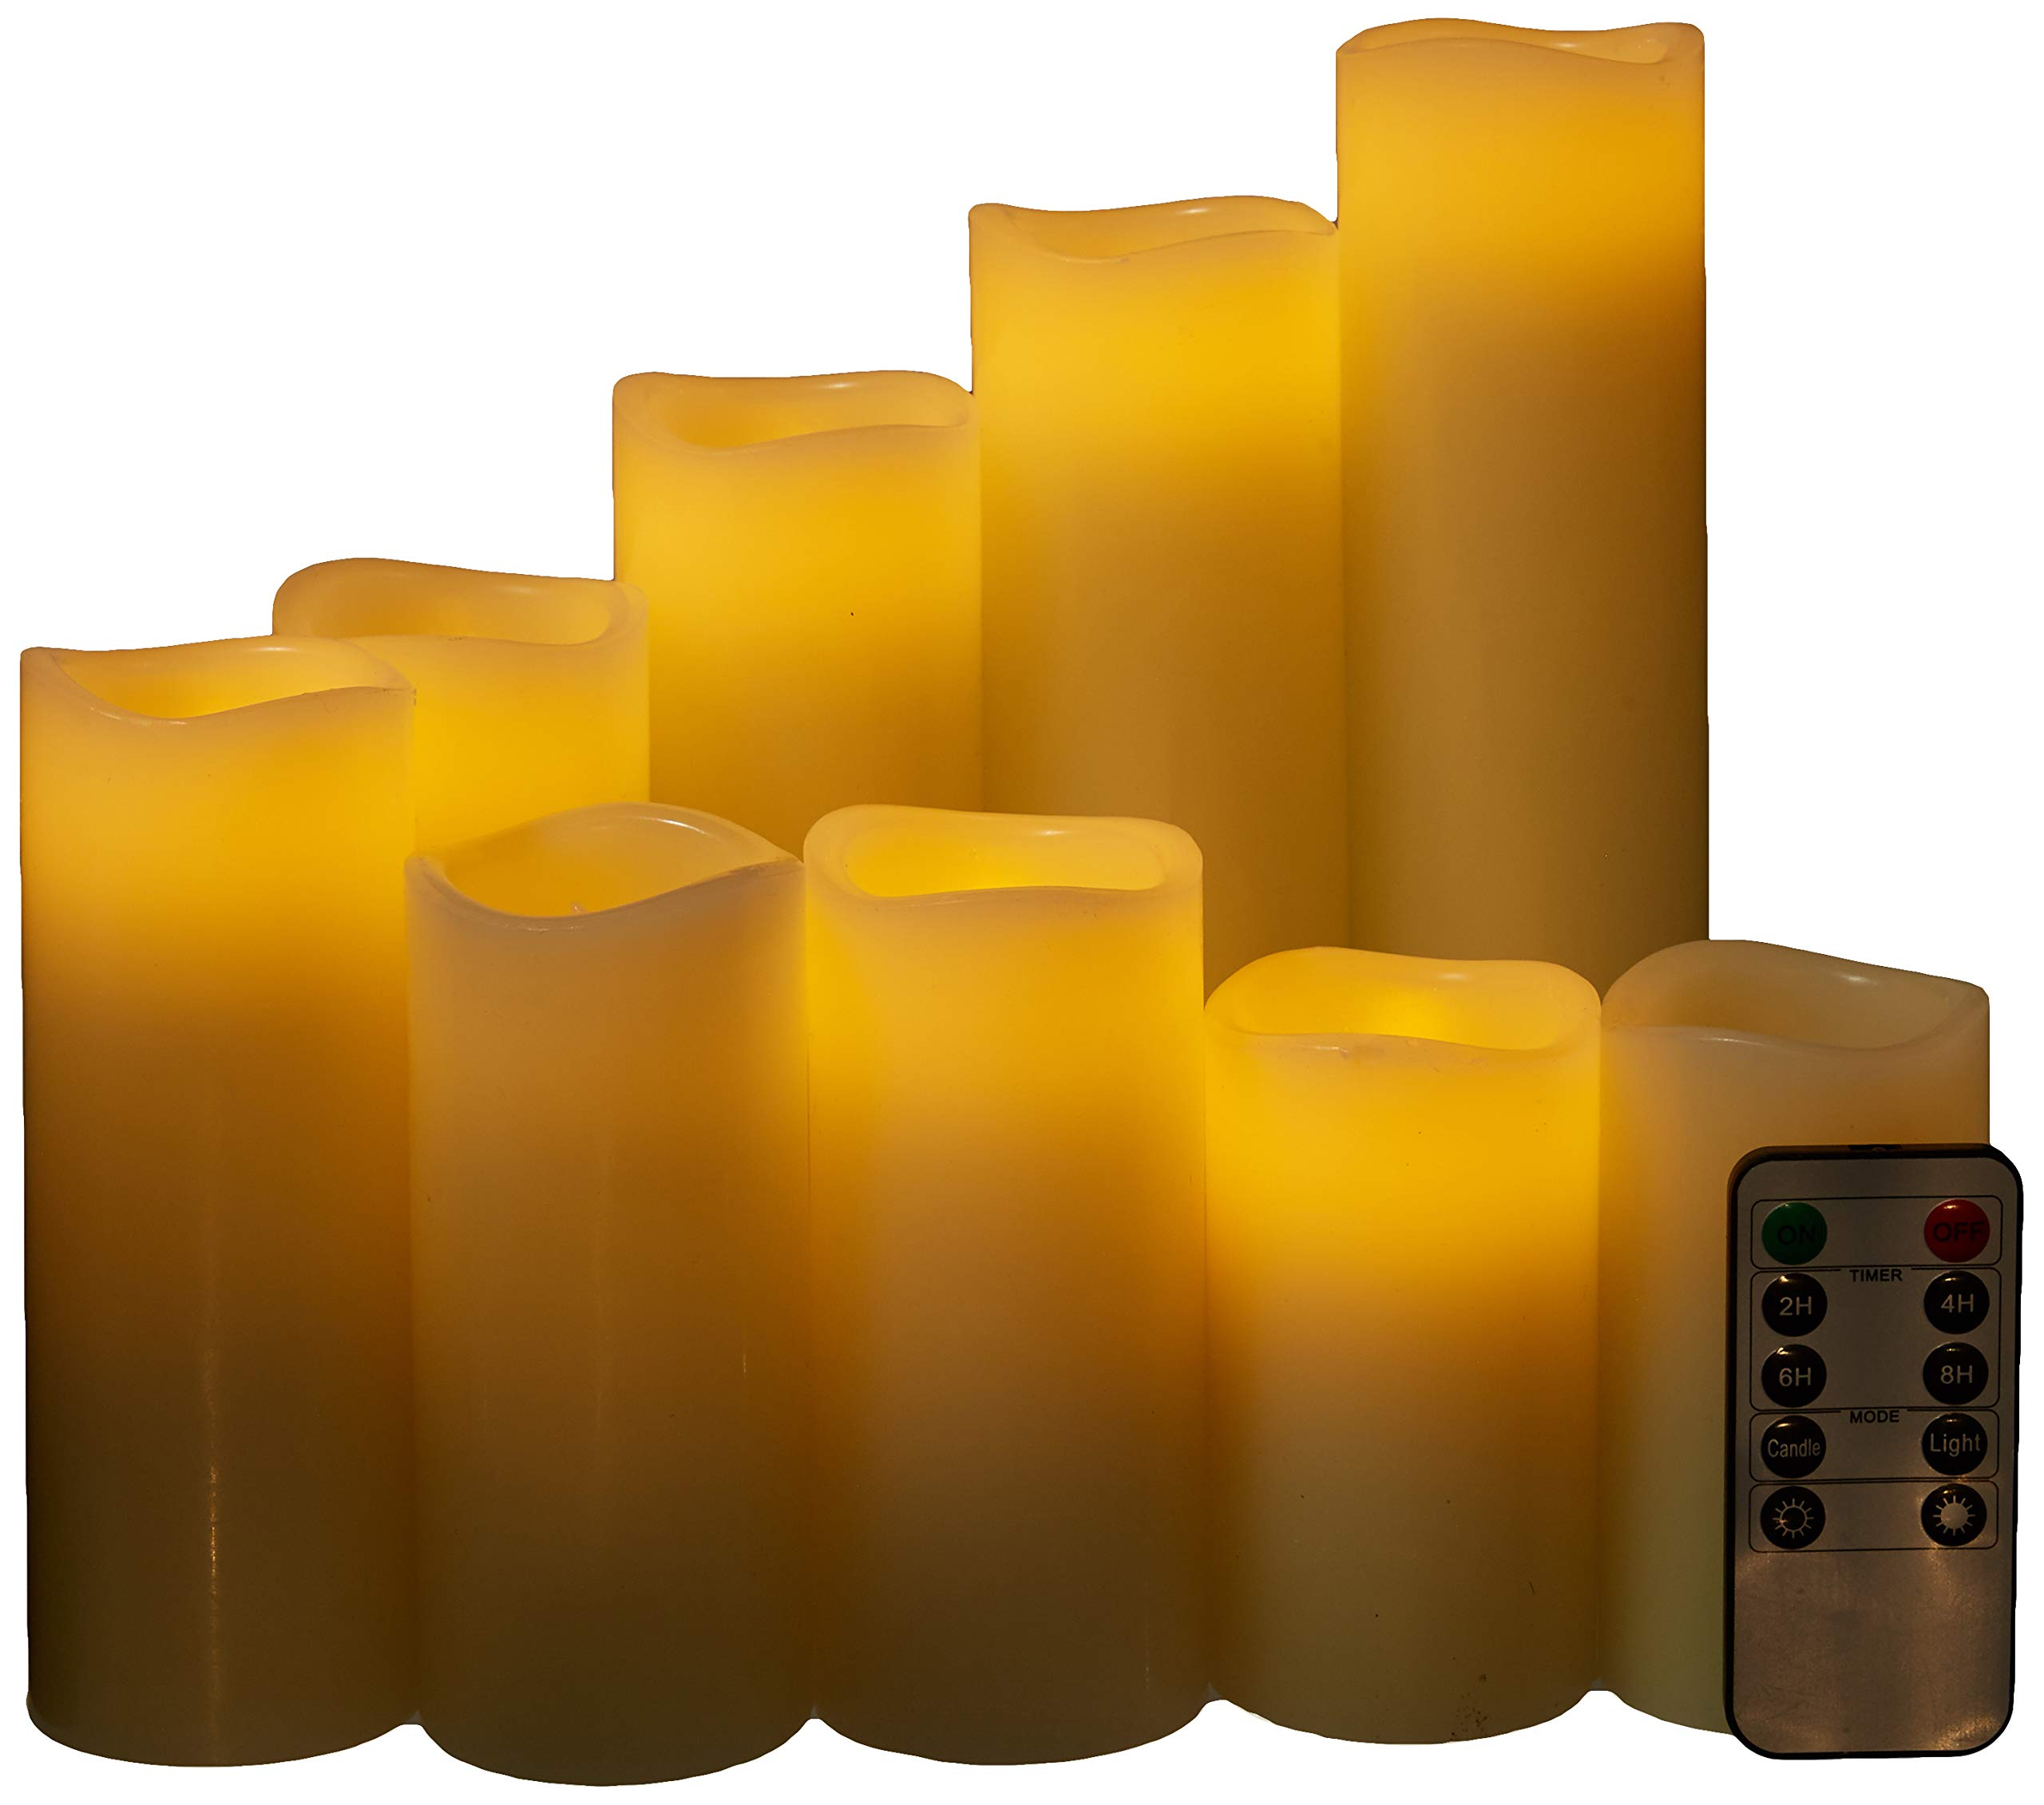 Homelife Flameless Candles, Led Candles Set of 9(H 4'' 5'' 6'' 7'' 8'' 9'' xD 2.2'') Ivory Color unscented Candles Real Wax Battery Candles with Remote and 24 Hours Timer Functions